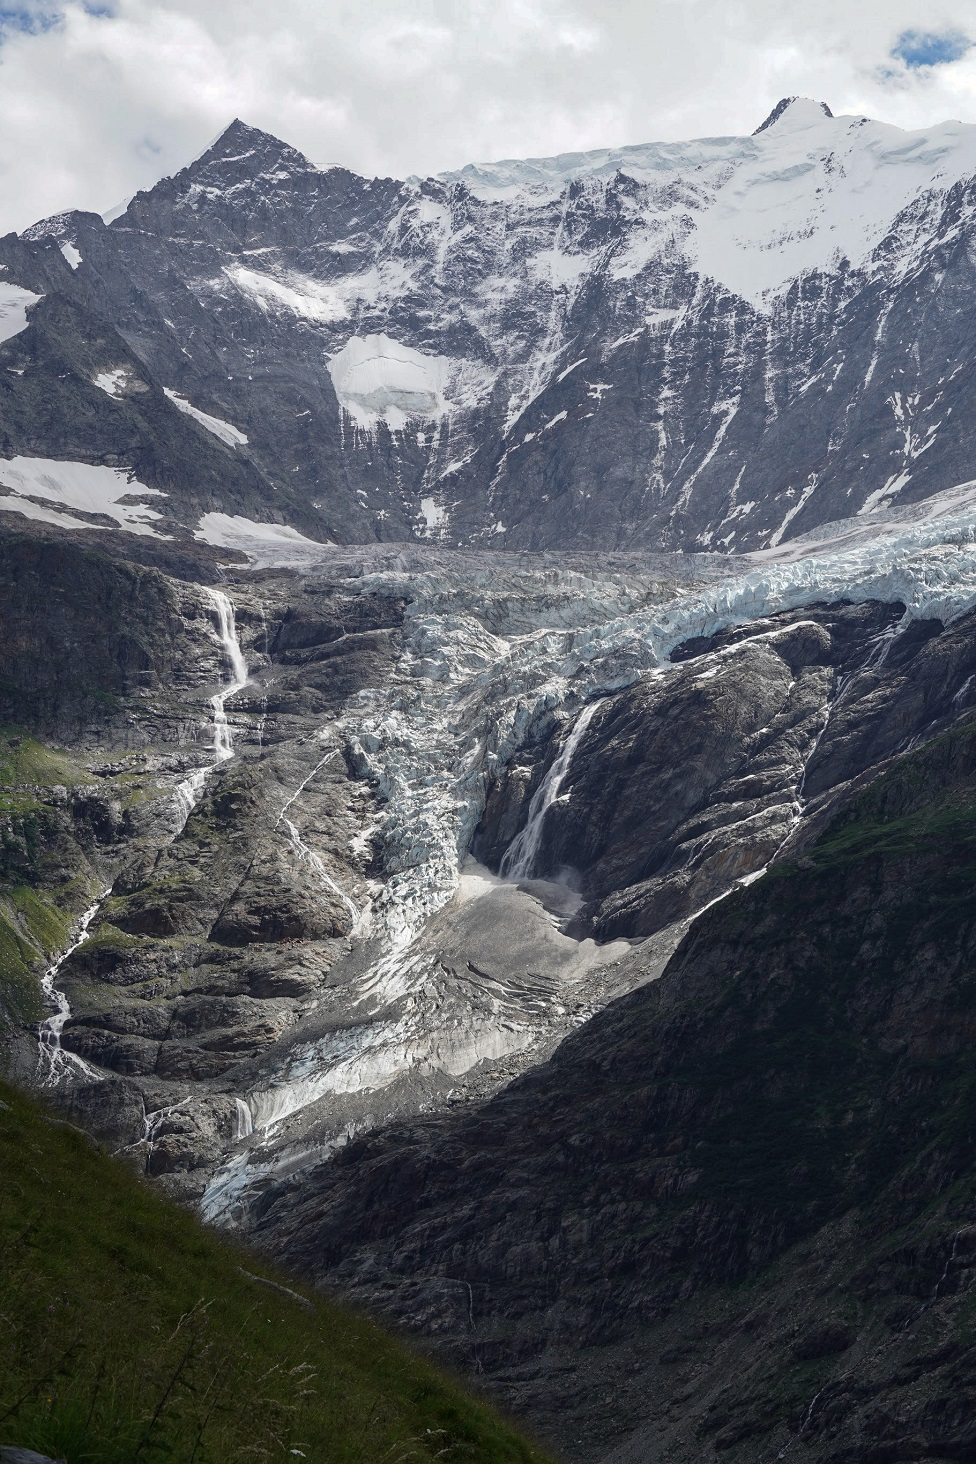 An view of a deep gorge and a glacier